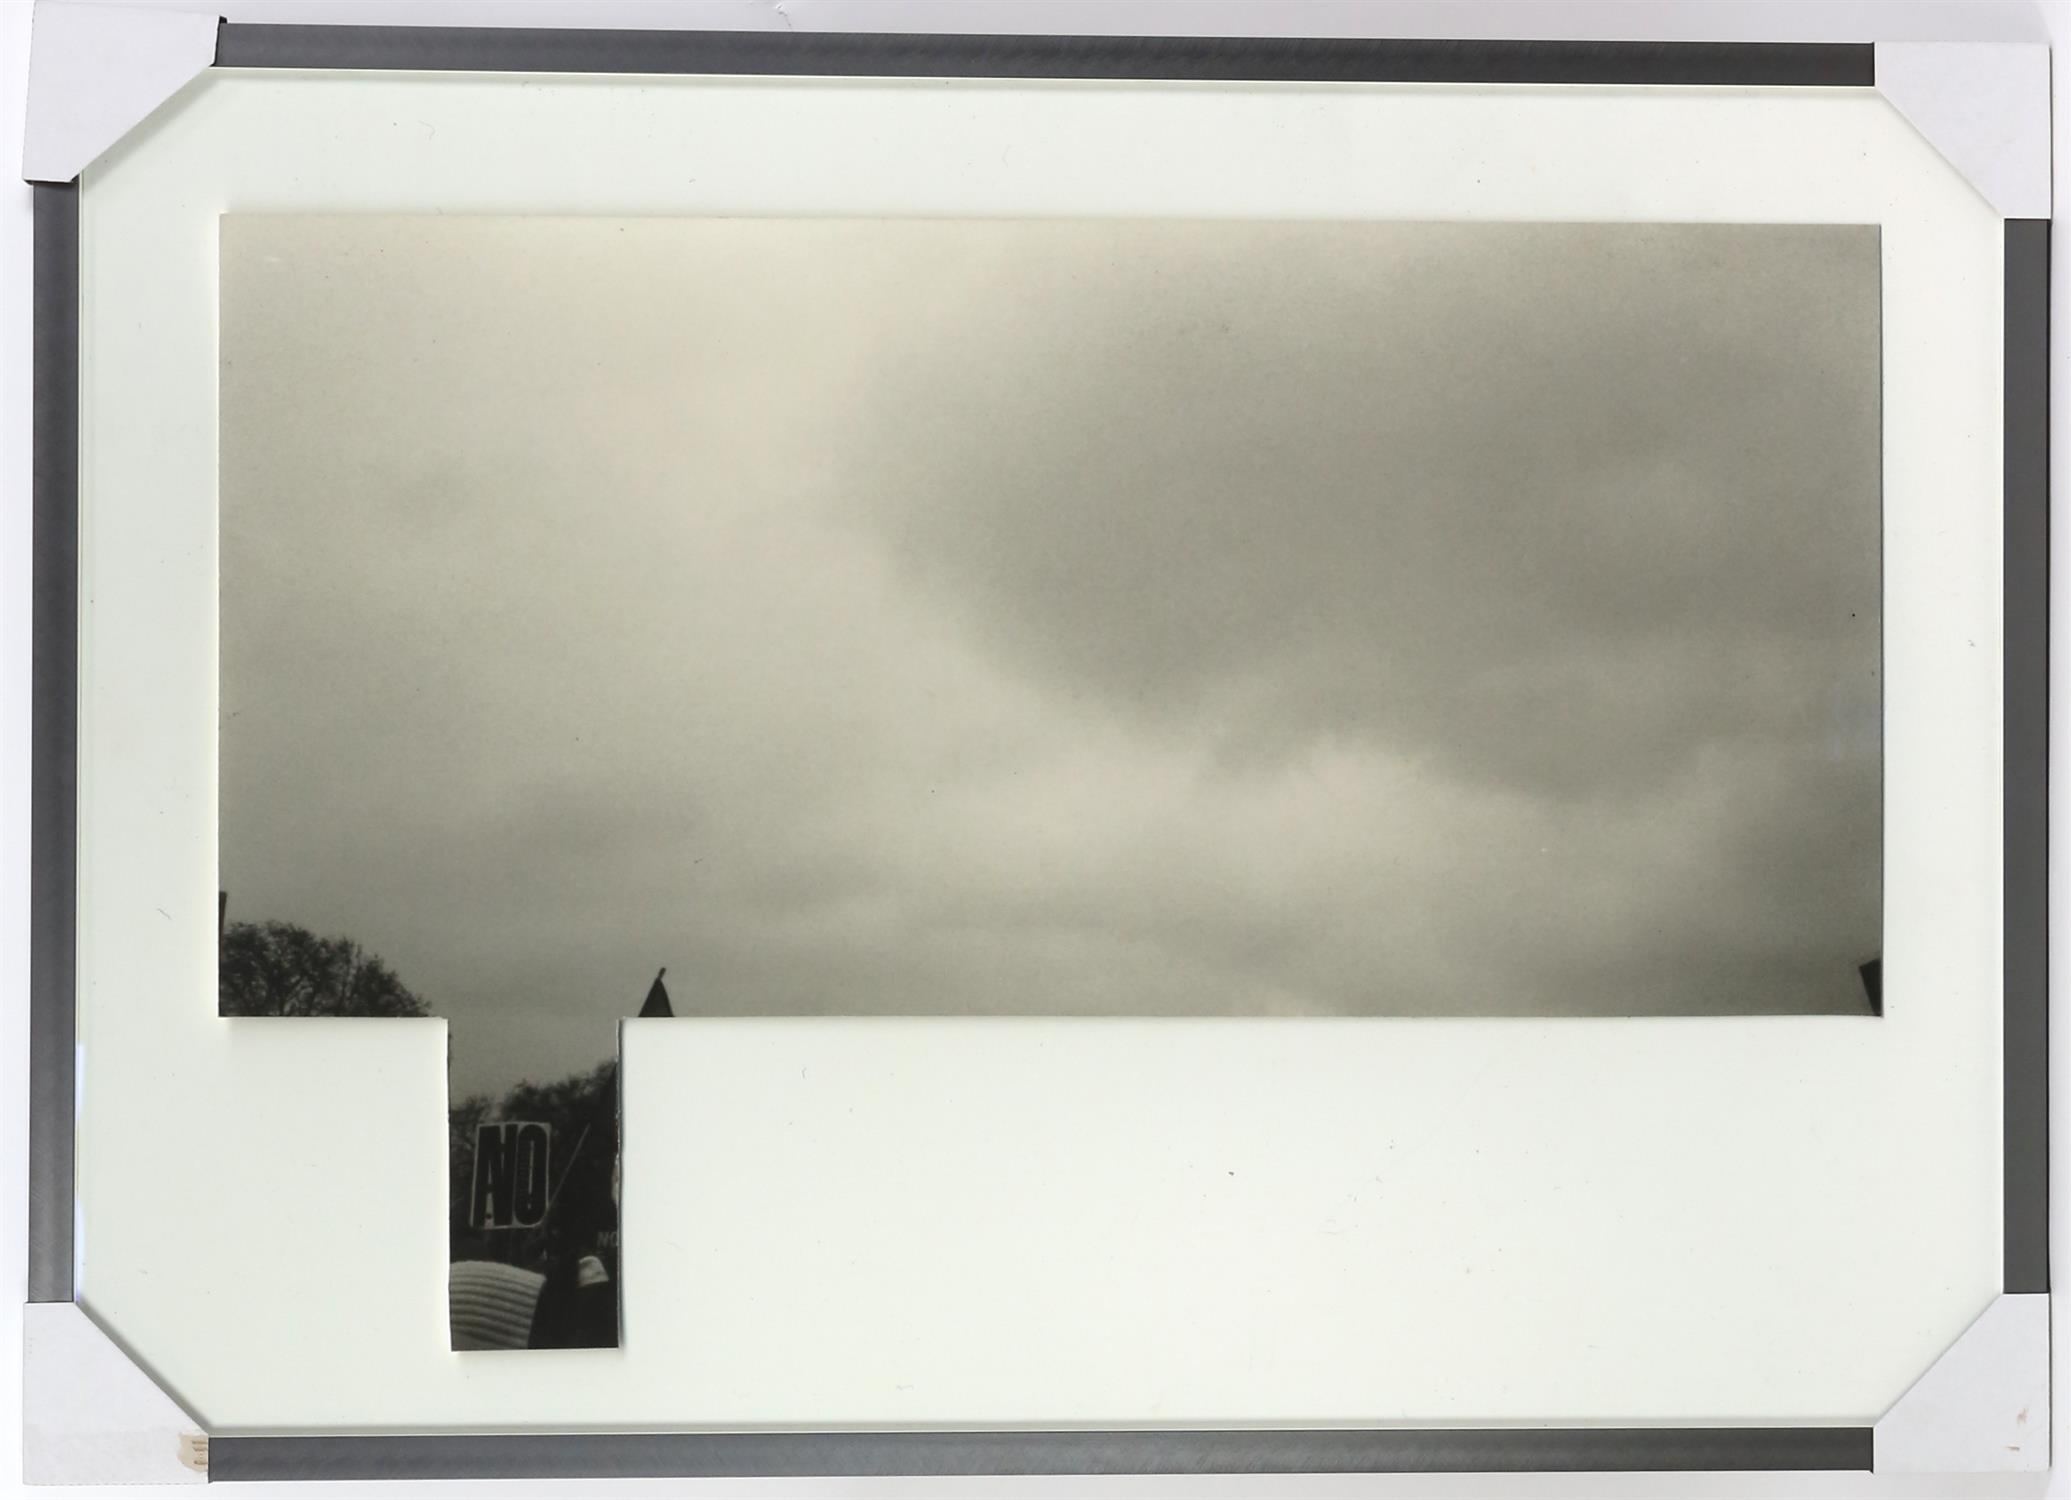 Lucy Coggle (British). 'Forecasting', 2011, digital print from scanned photograph, 70 x 100 cm. - Image 2 of 2